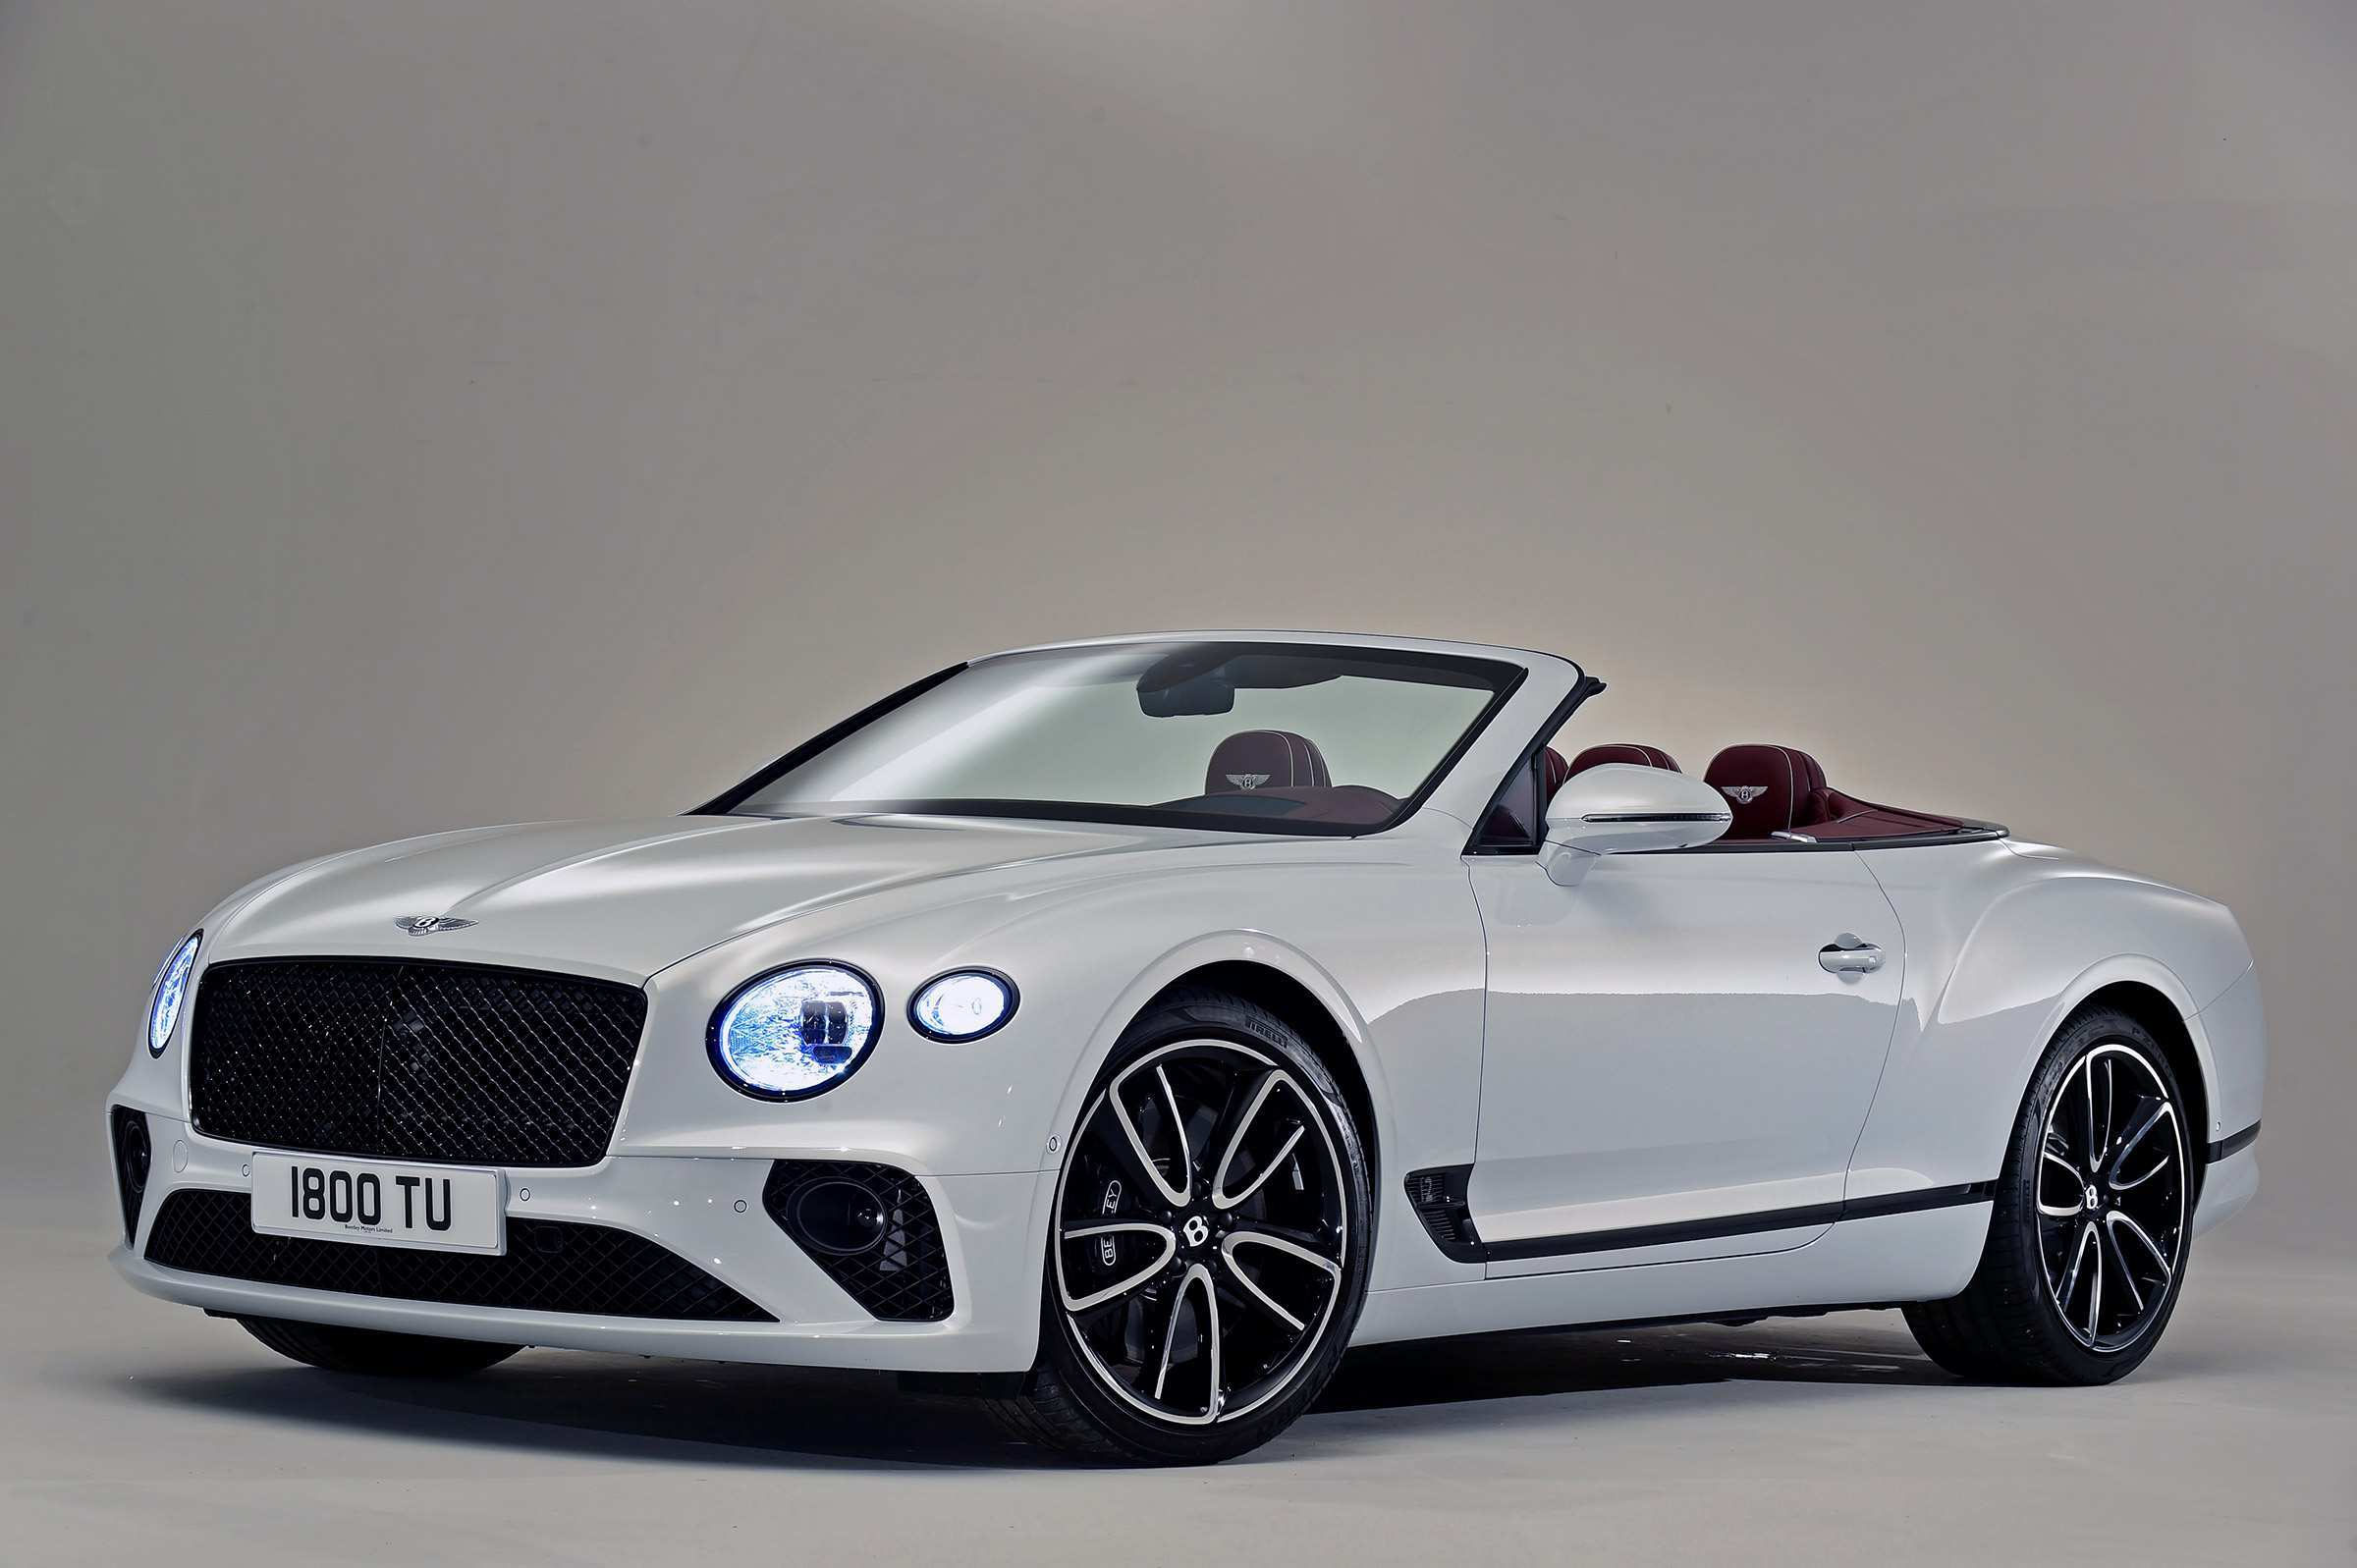 82 The Best 2019 Bentley Continental Gt V8 Model